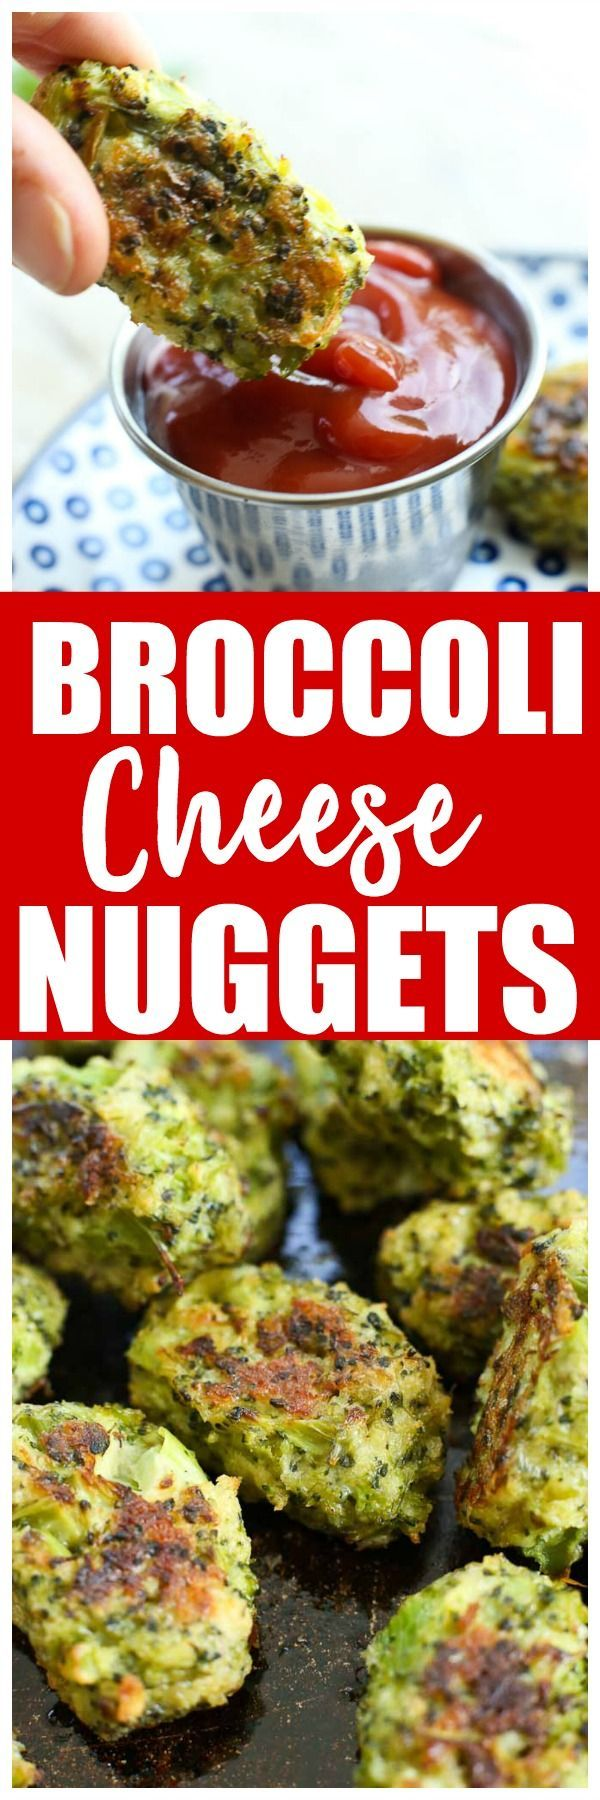 Broccoli cheese bites nuggets recipe   toddler   vegetable   side dish   healthy